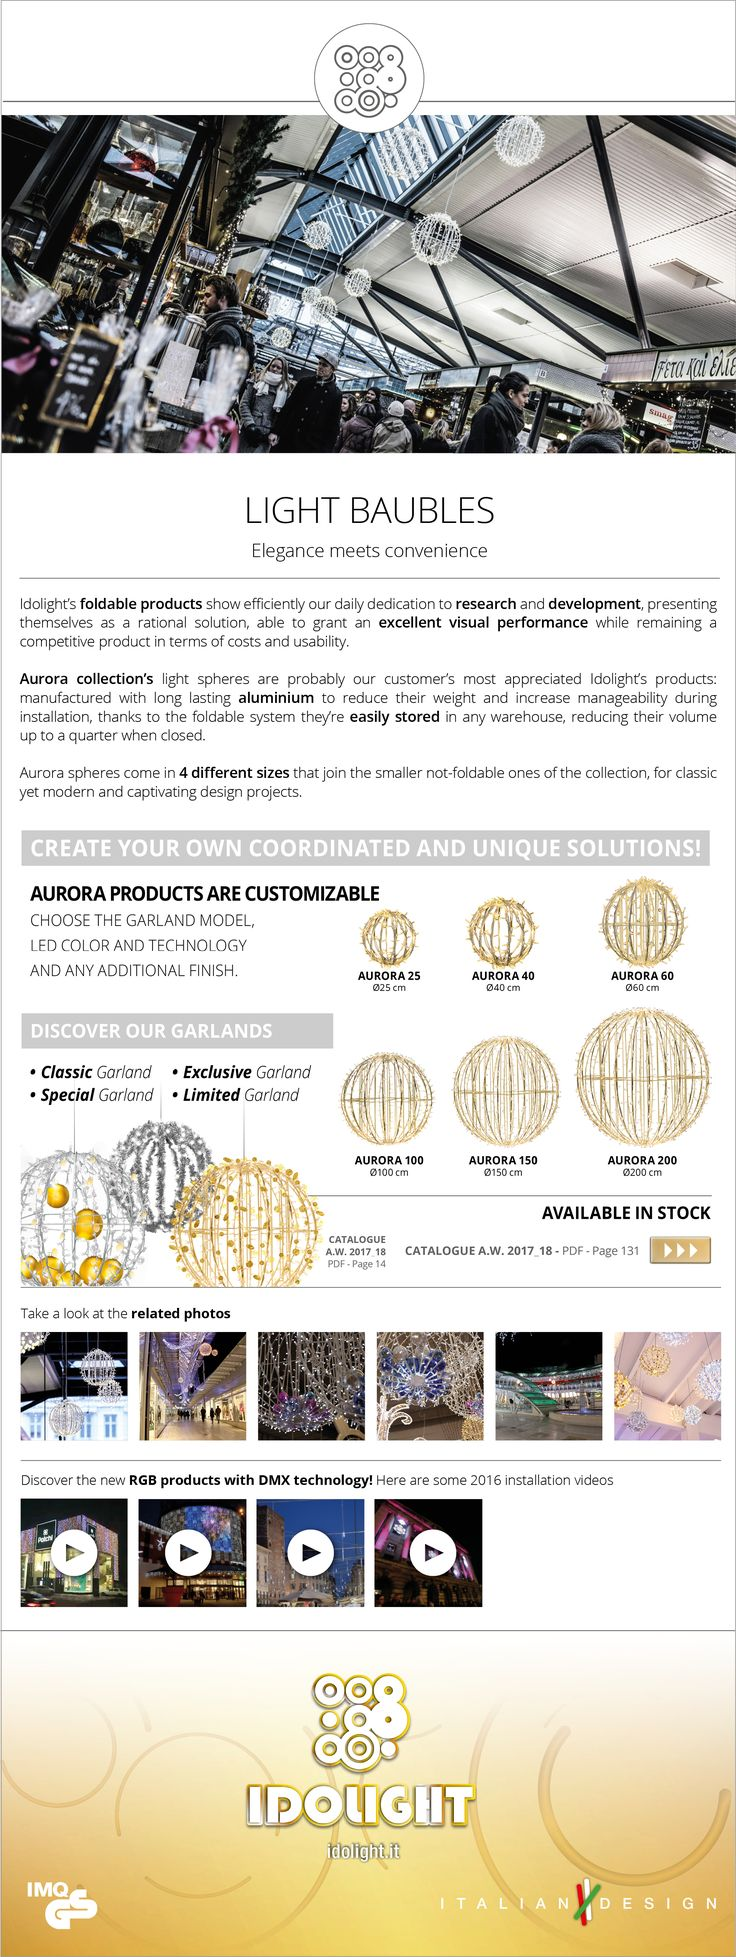 Aurora foldable spheres: create your own coordinated and unique solution!  #idolight #LightSolutions #madeinitaly #italiandesign